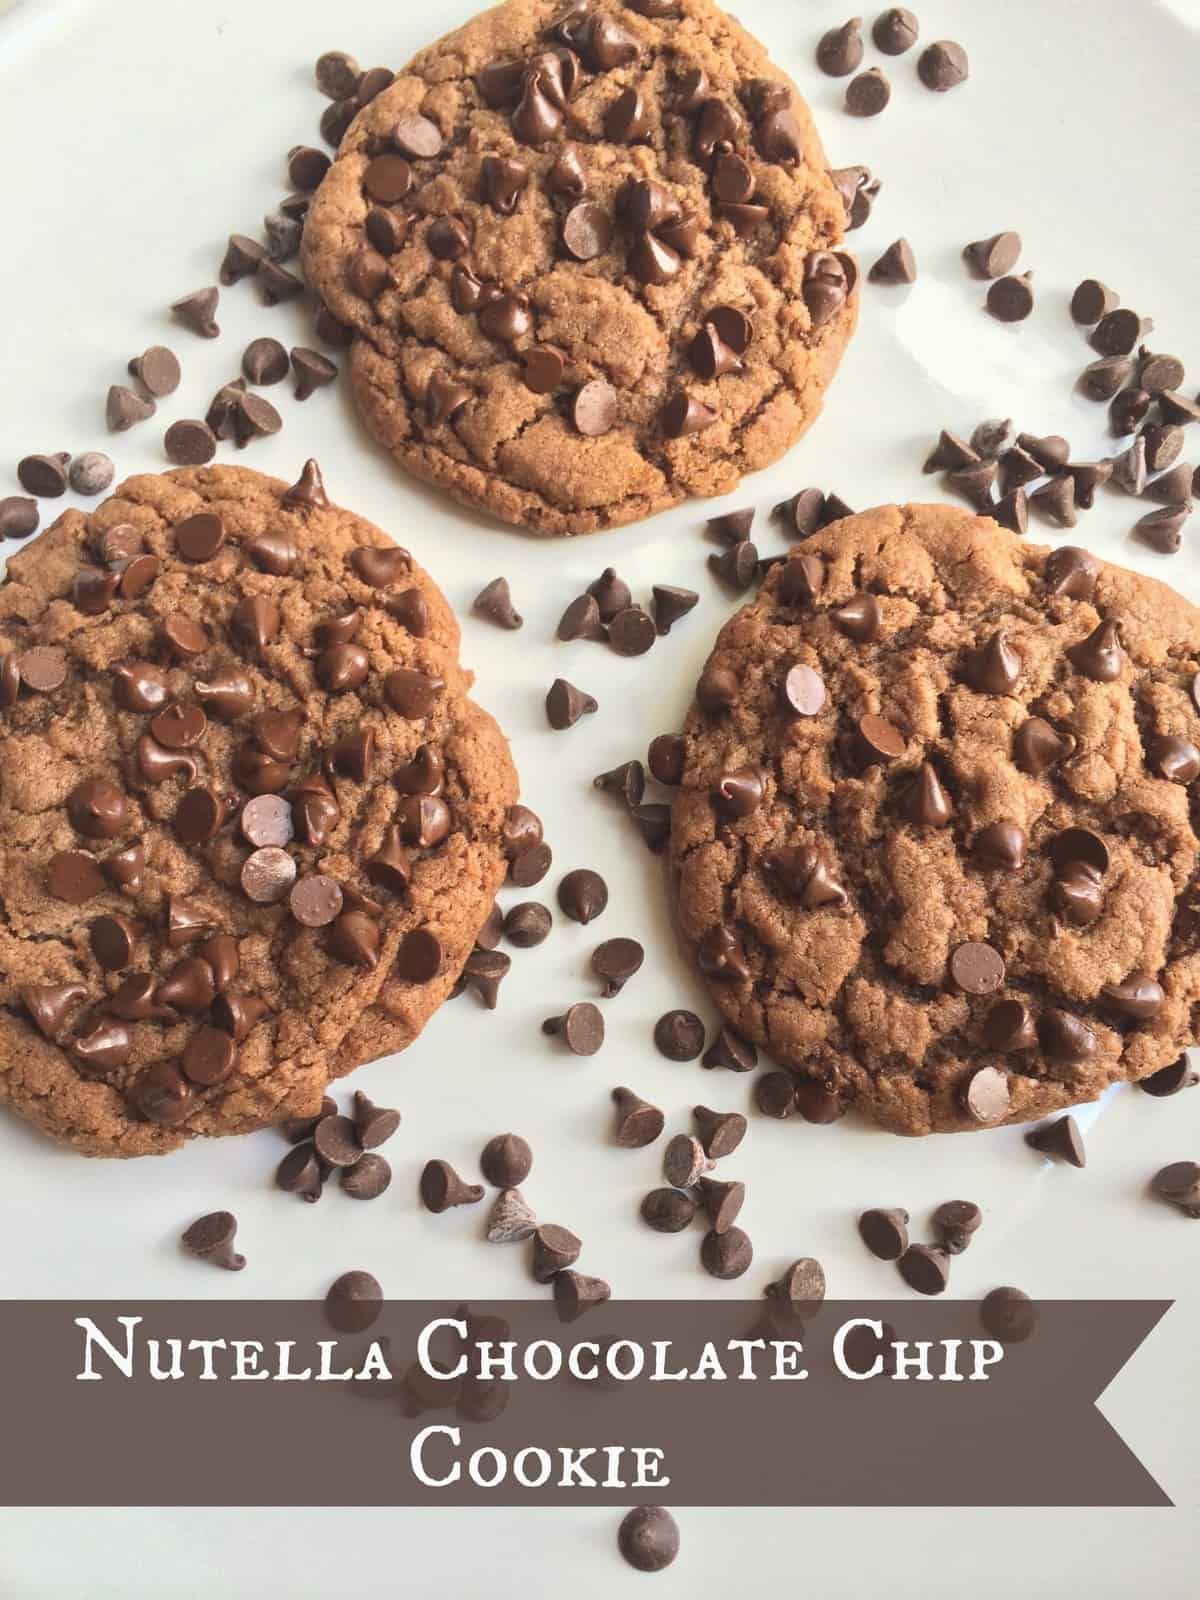 Nutella Chocolate Chip Cookie - A Sparkle of Genius